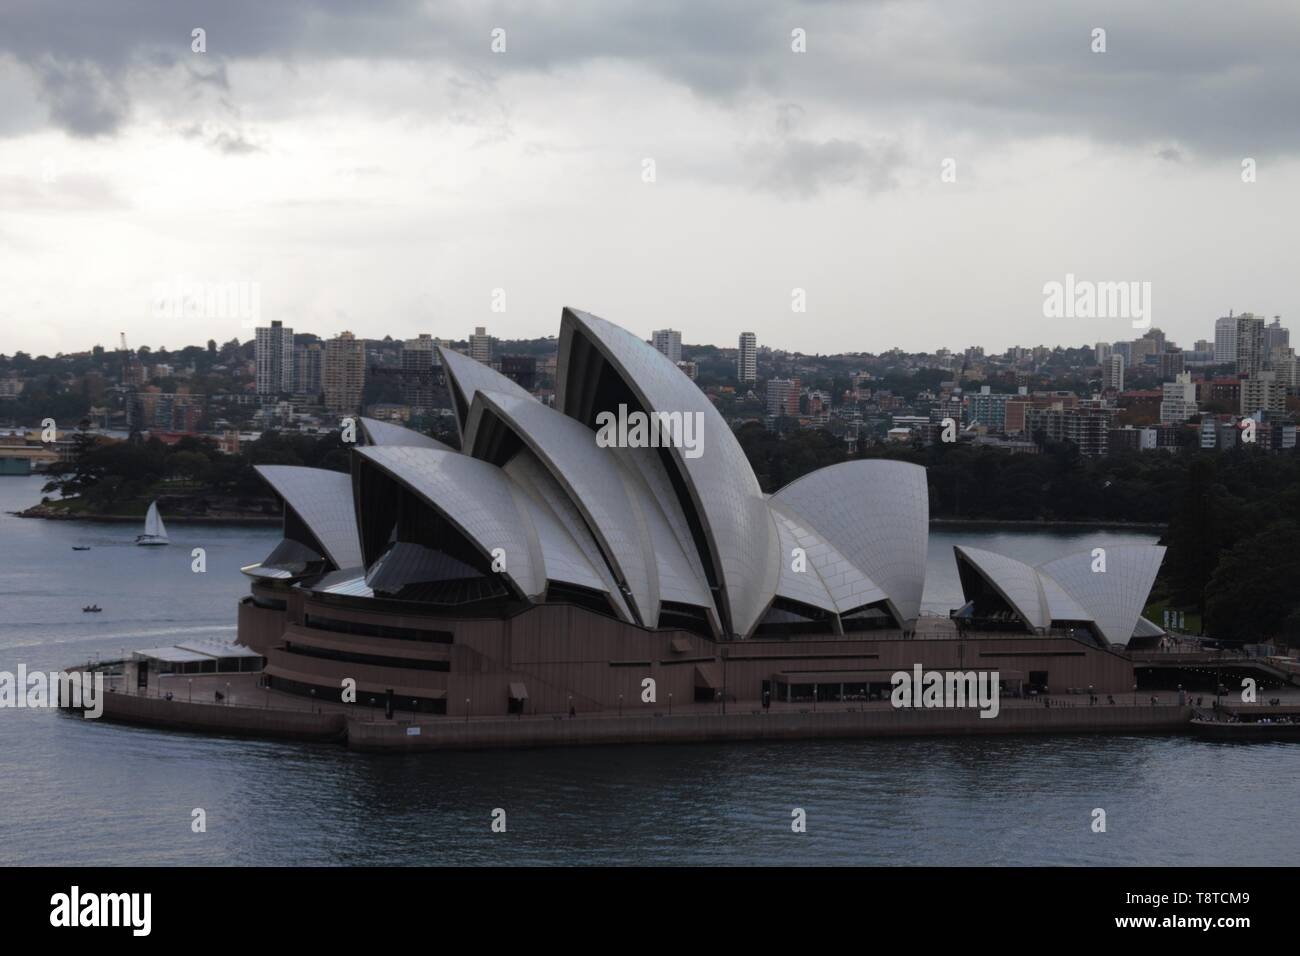 Sydney opera house always offers the best panorama view in town - Stock Image